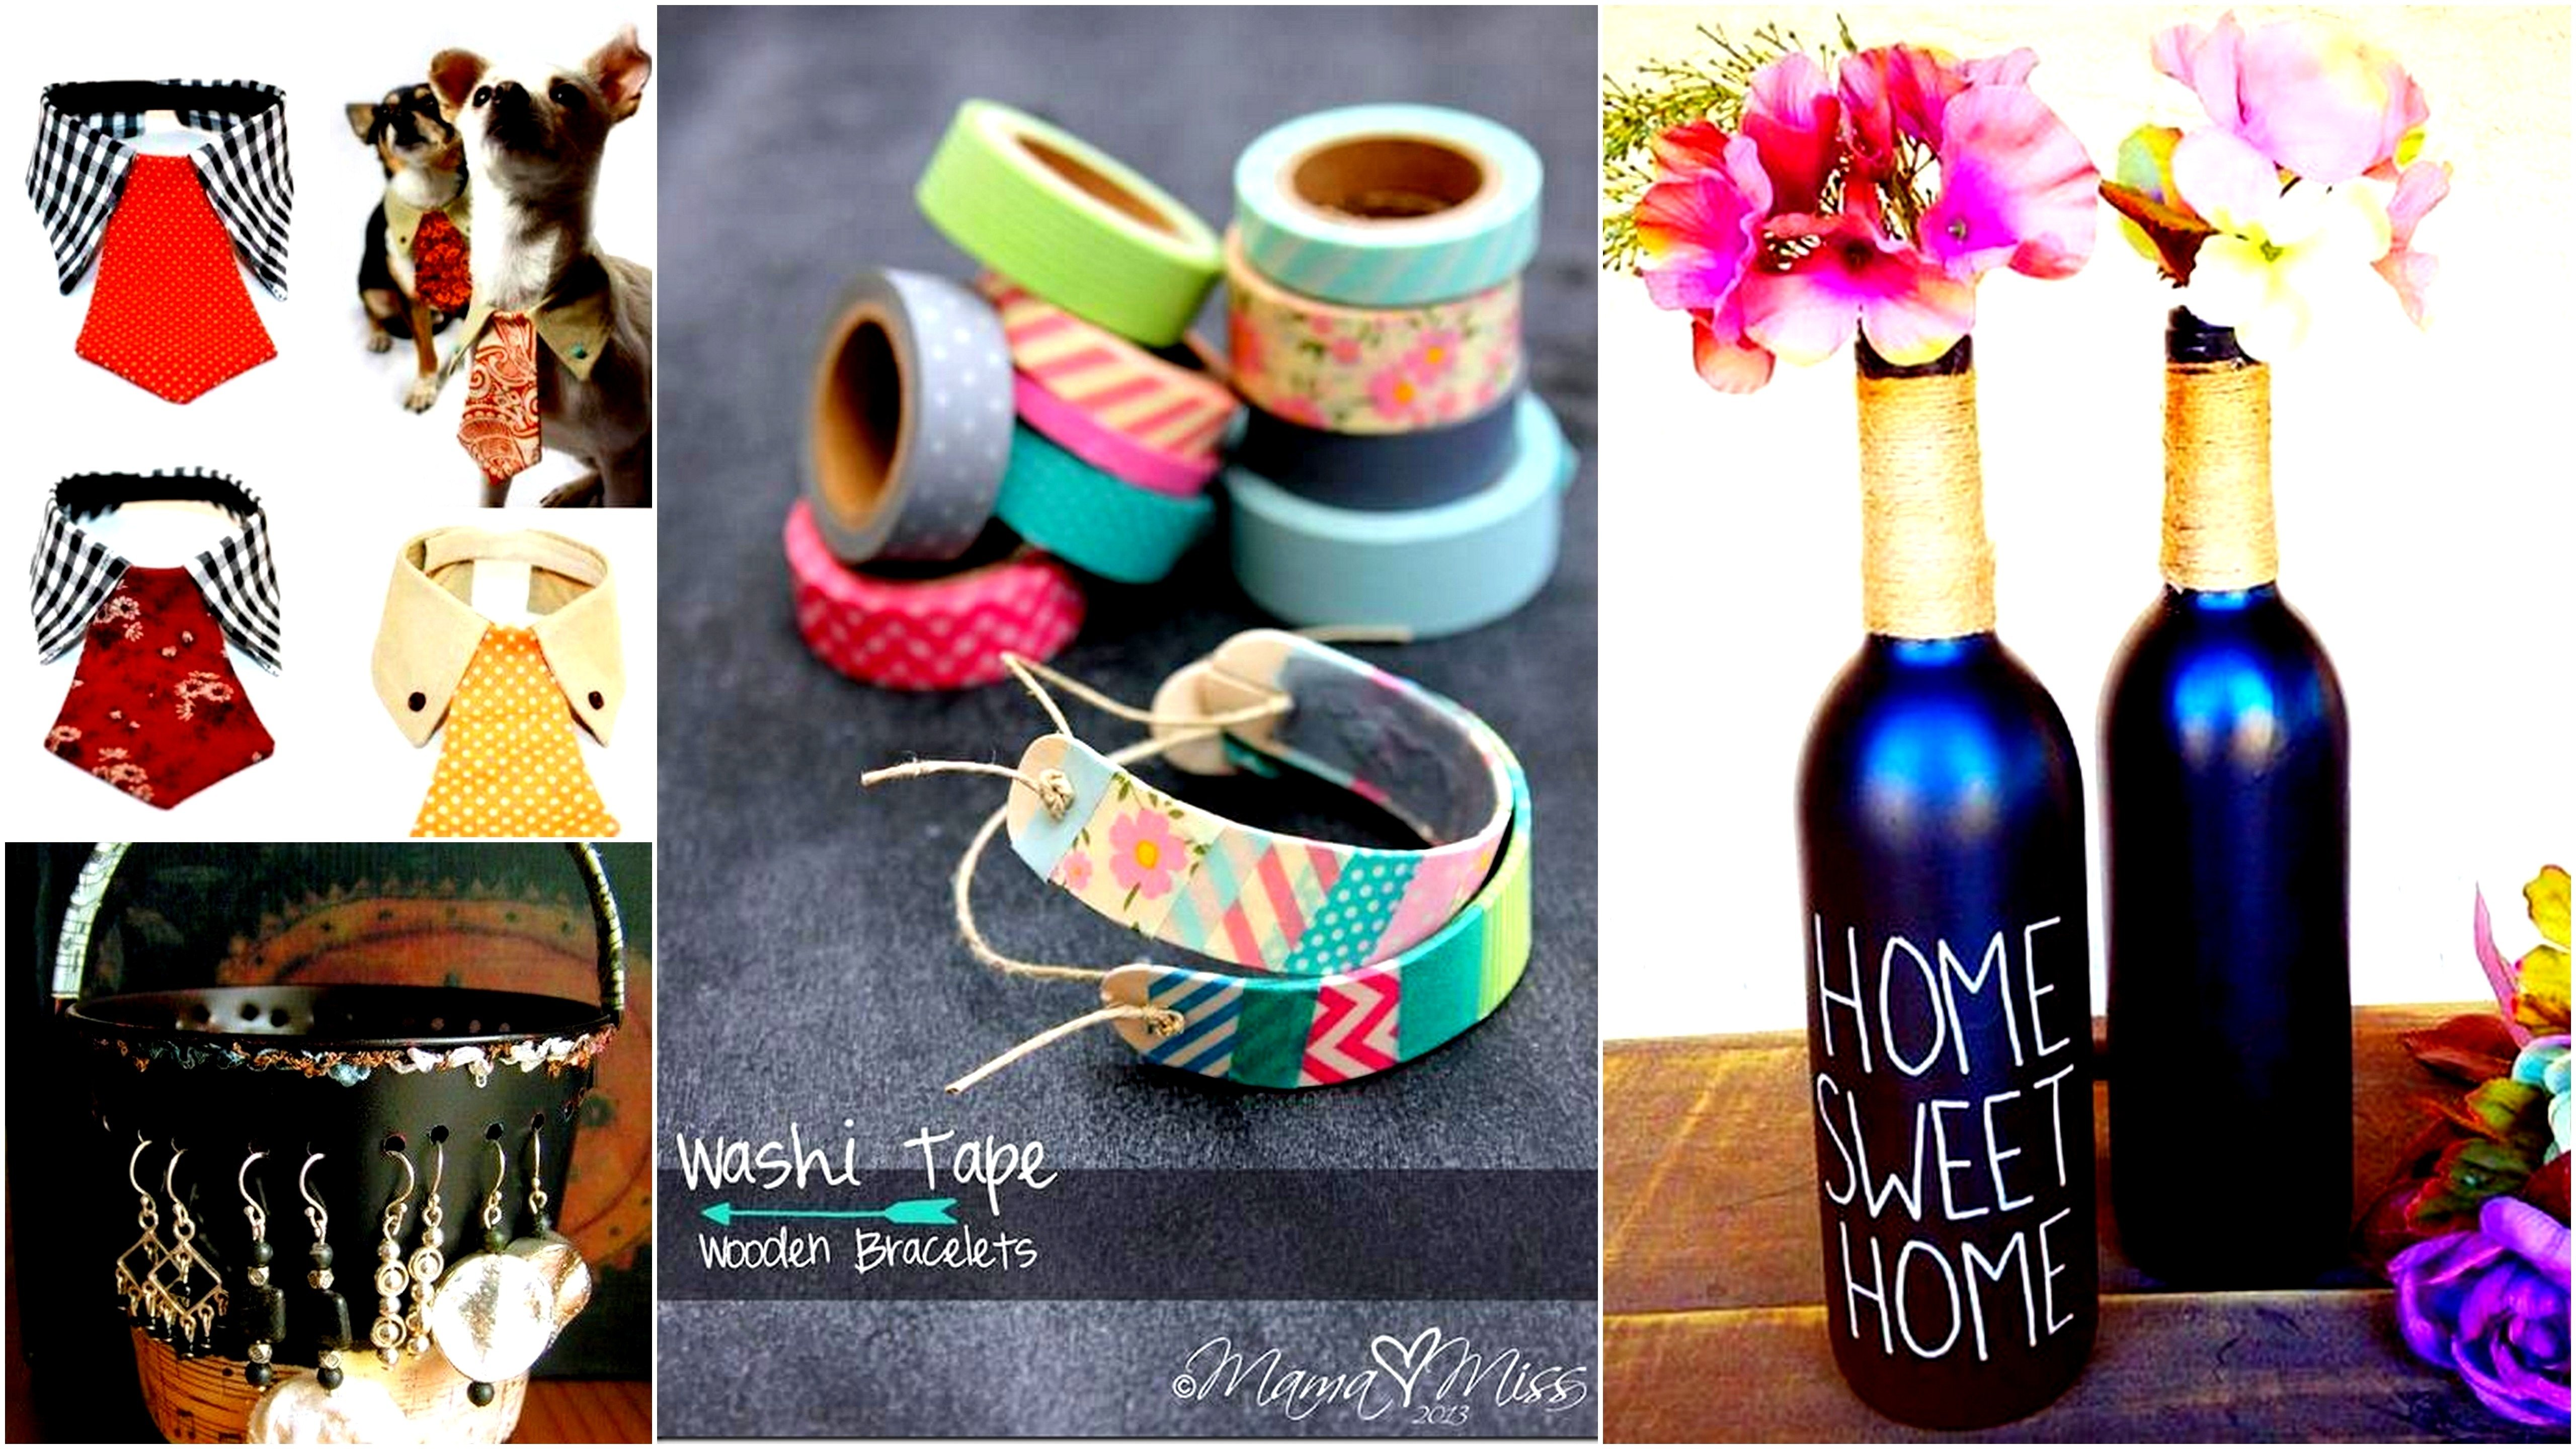 10 lovable craft ideas to make and sell from home